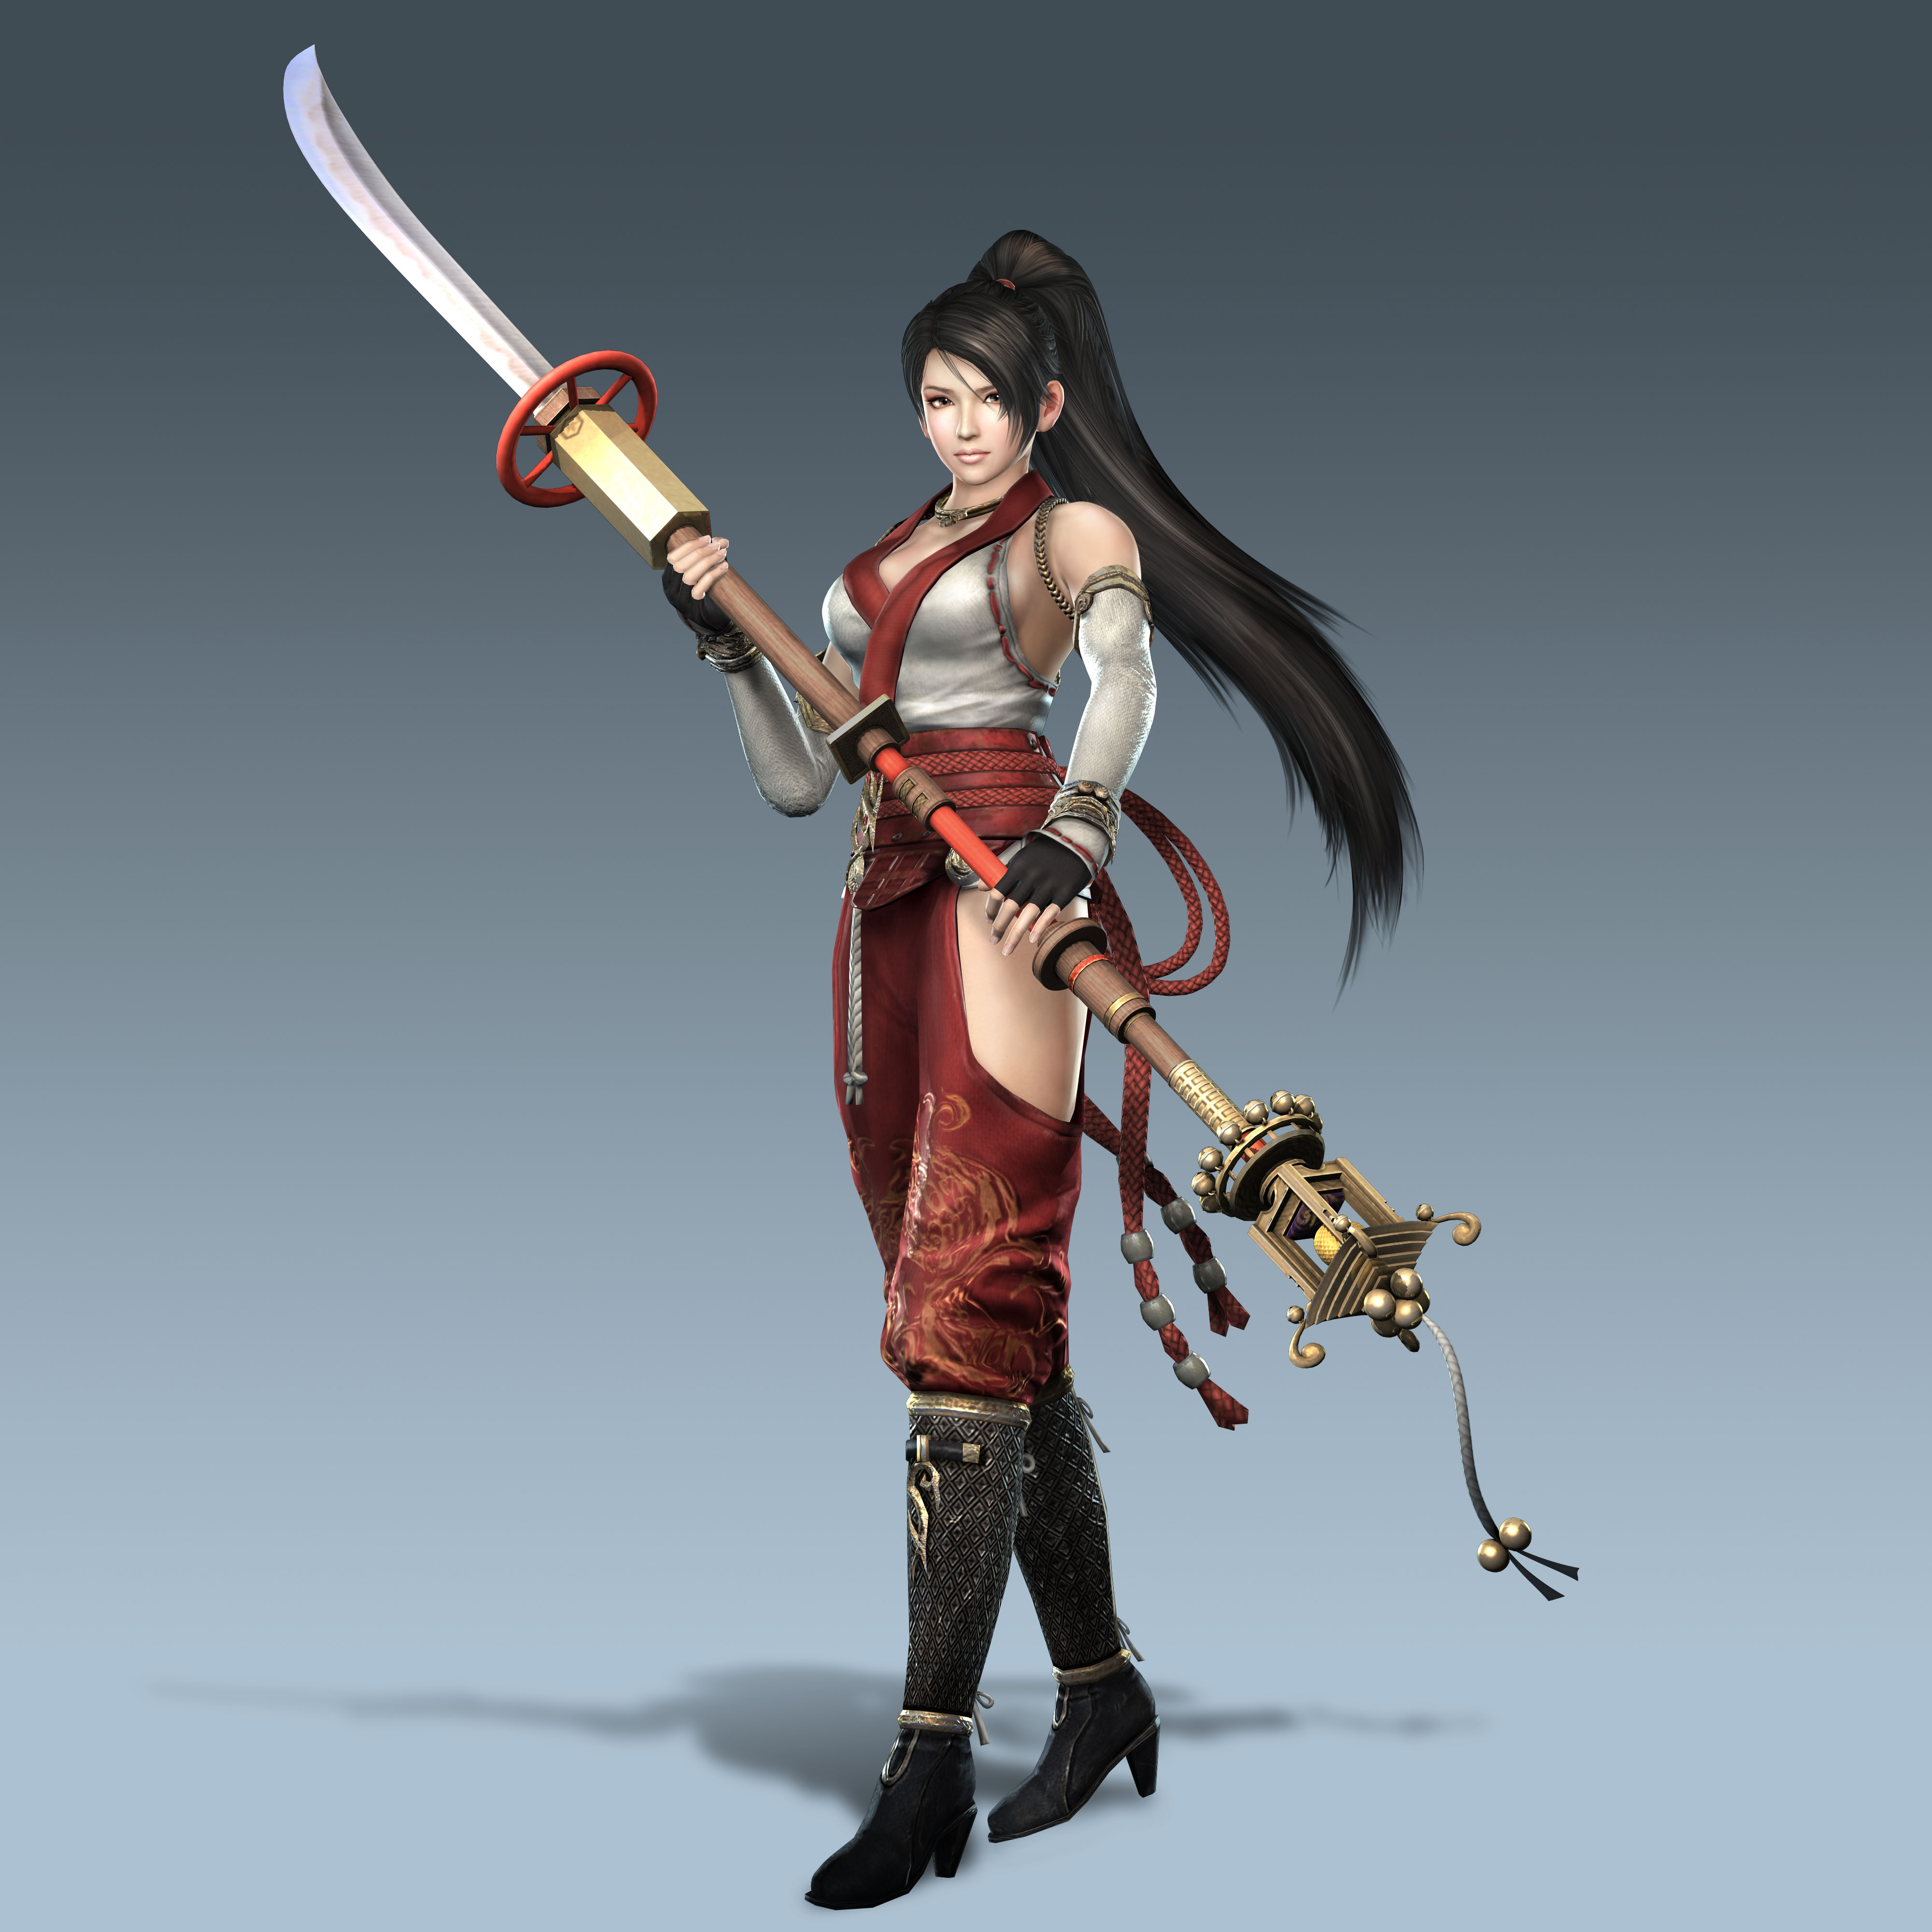 Warriors Orochi 3 Ultimate Xbox One: Warriors Orochi 3 Ultimate Saldrá El 5 De Septiembre En